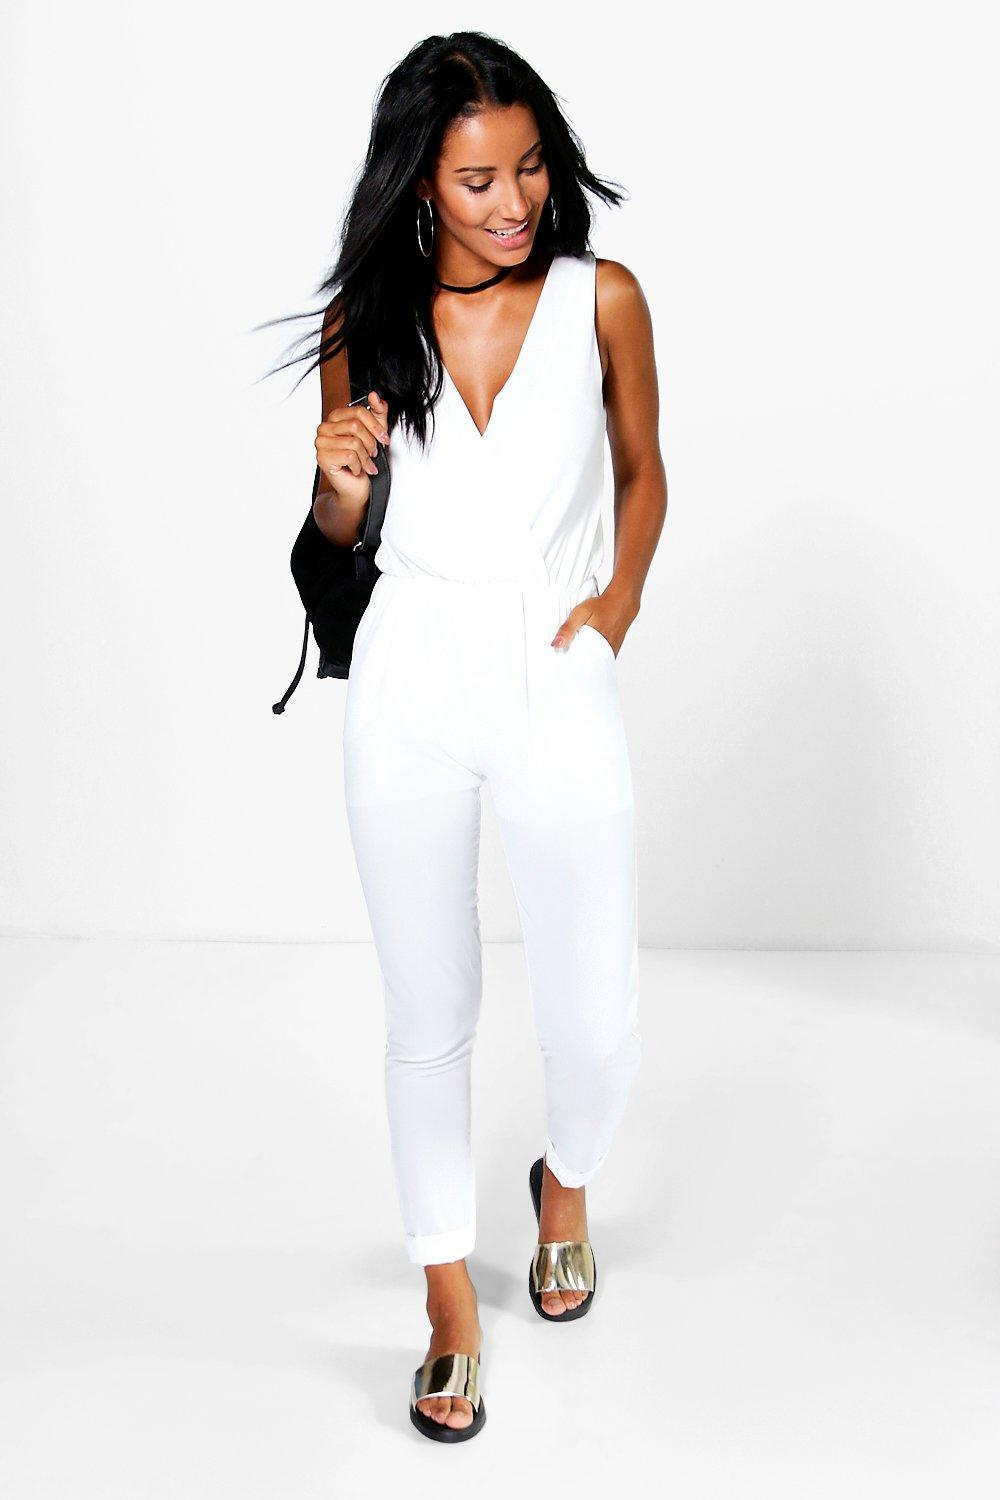 Cross Front Woven Jumpsuit White - length: standard; neckline: low v-neck; pattern: plain; sleeve style: sleeveless; predominant colour: white; occasions: evening; fit: body skimming; fibres: viscose/rayon - 100%; sleeve length: sleeveless; style: jumpsuit; pattern type: fabric; texture group: jersey - stretchy/drapey; season: s/s 2016